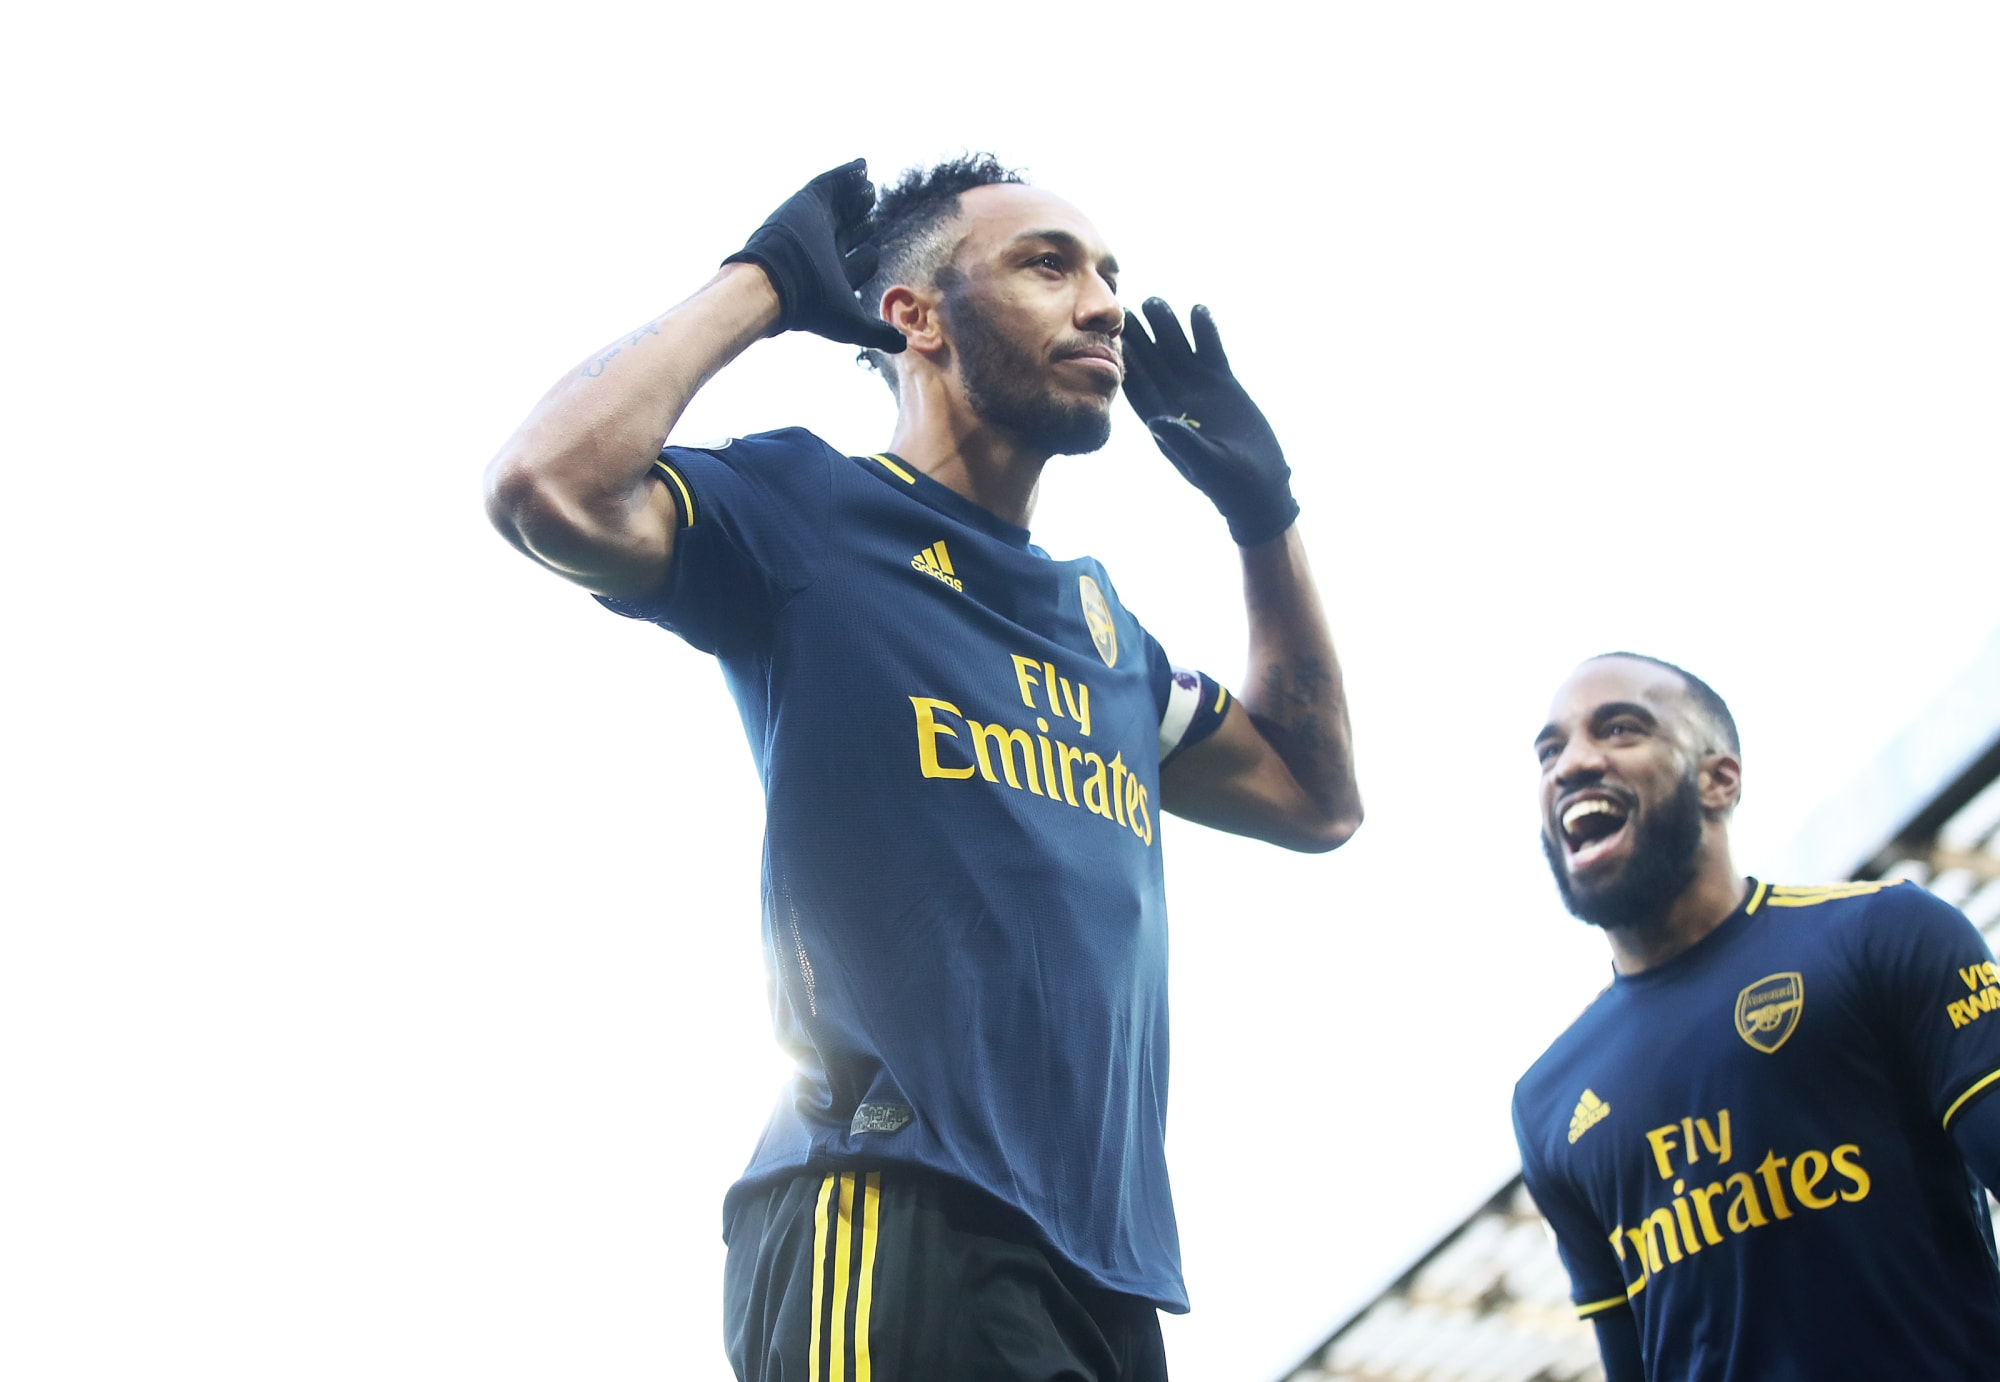 Barcelona's search for a striker takes a turn - Aubameyang